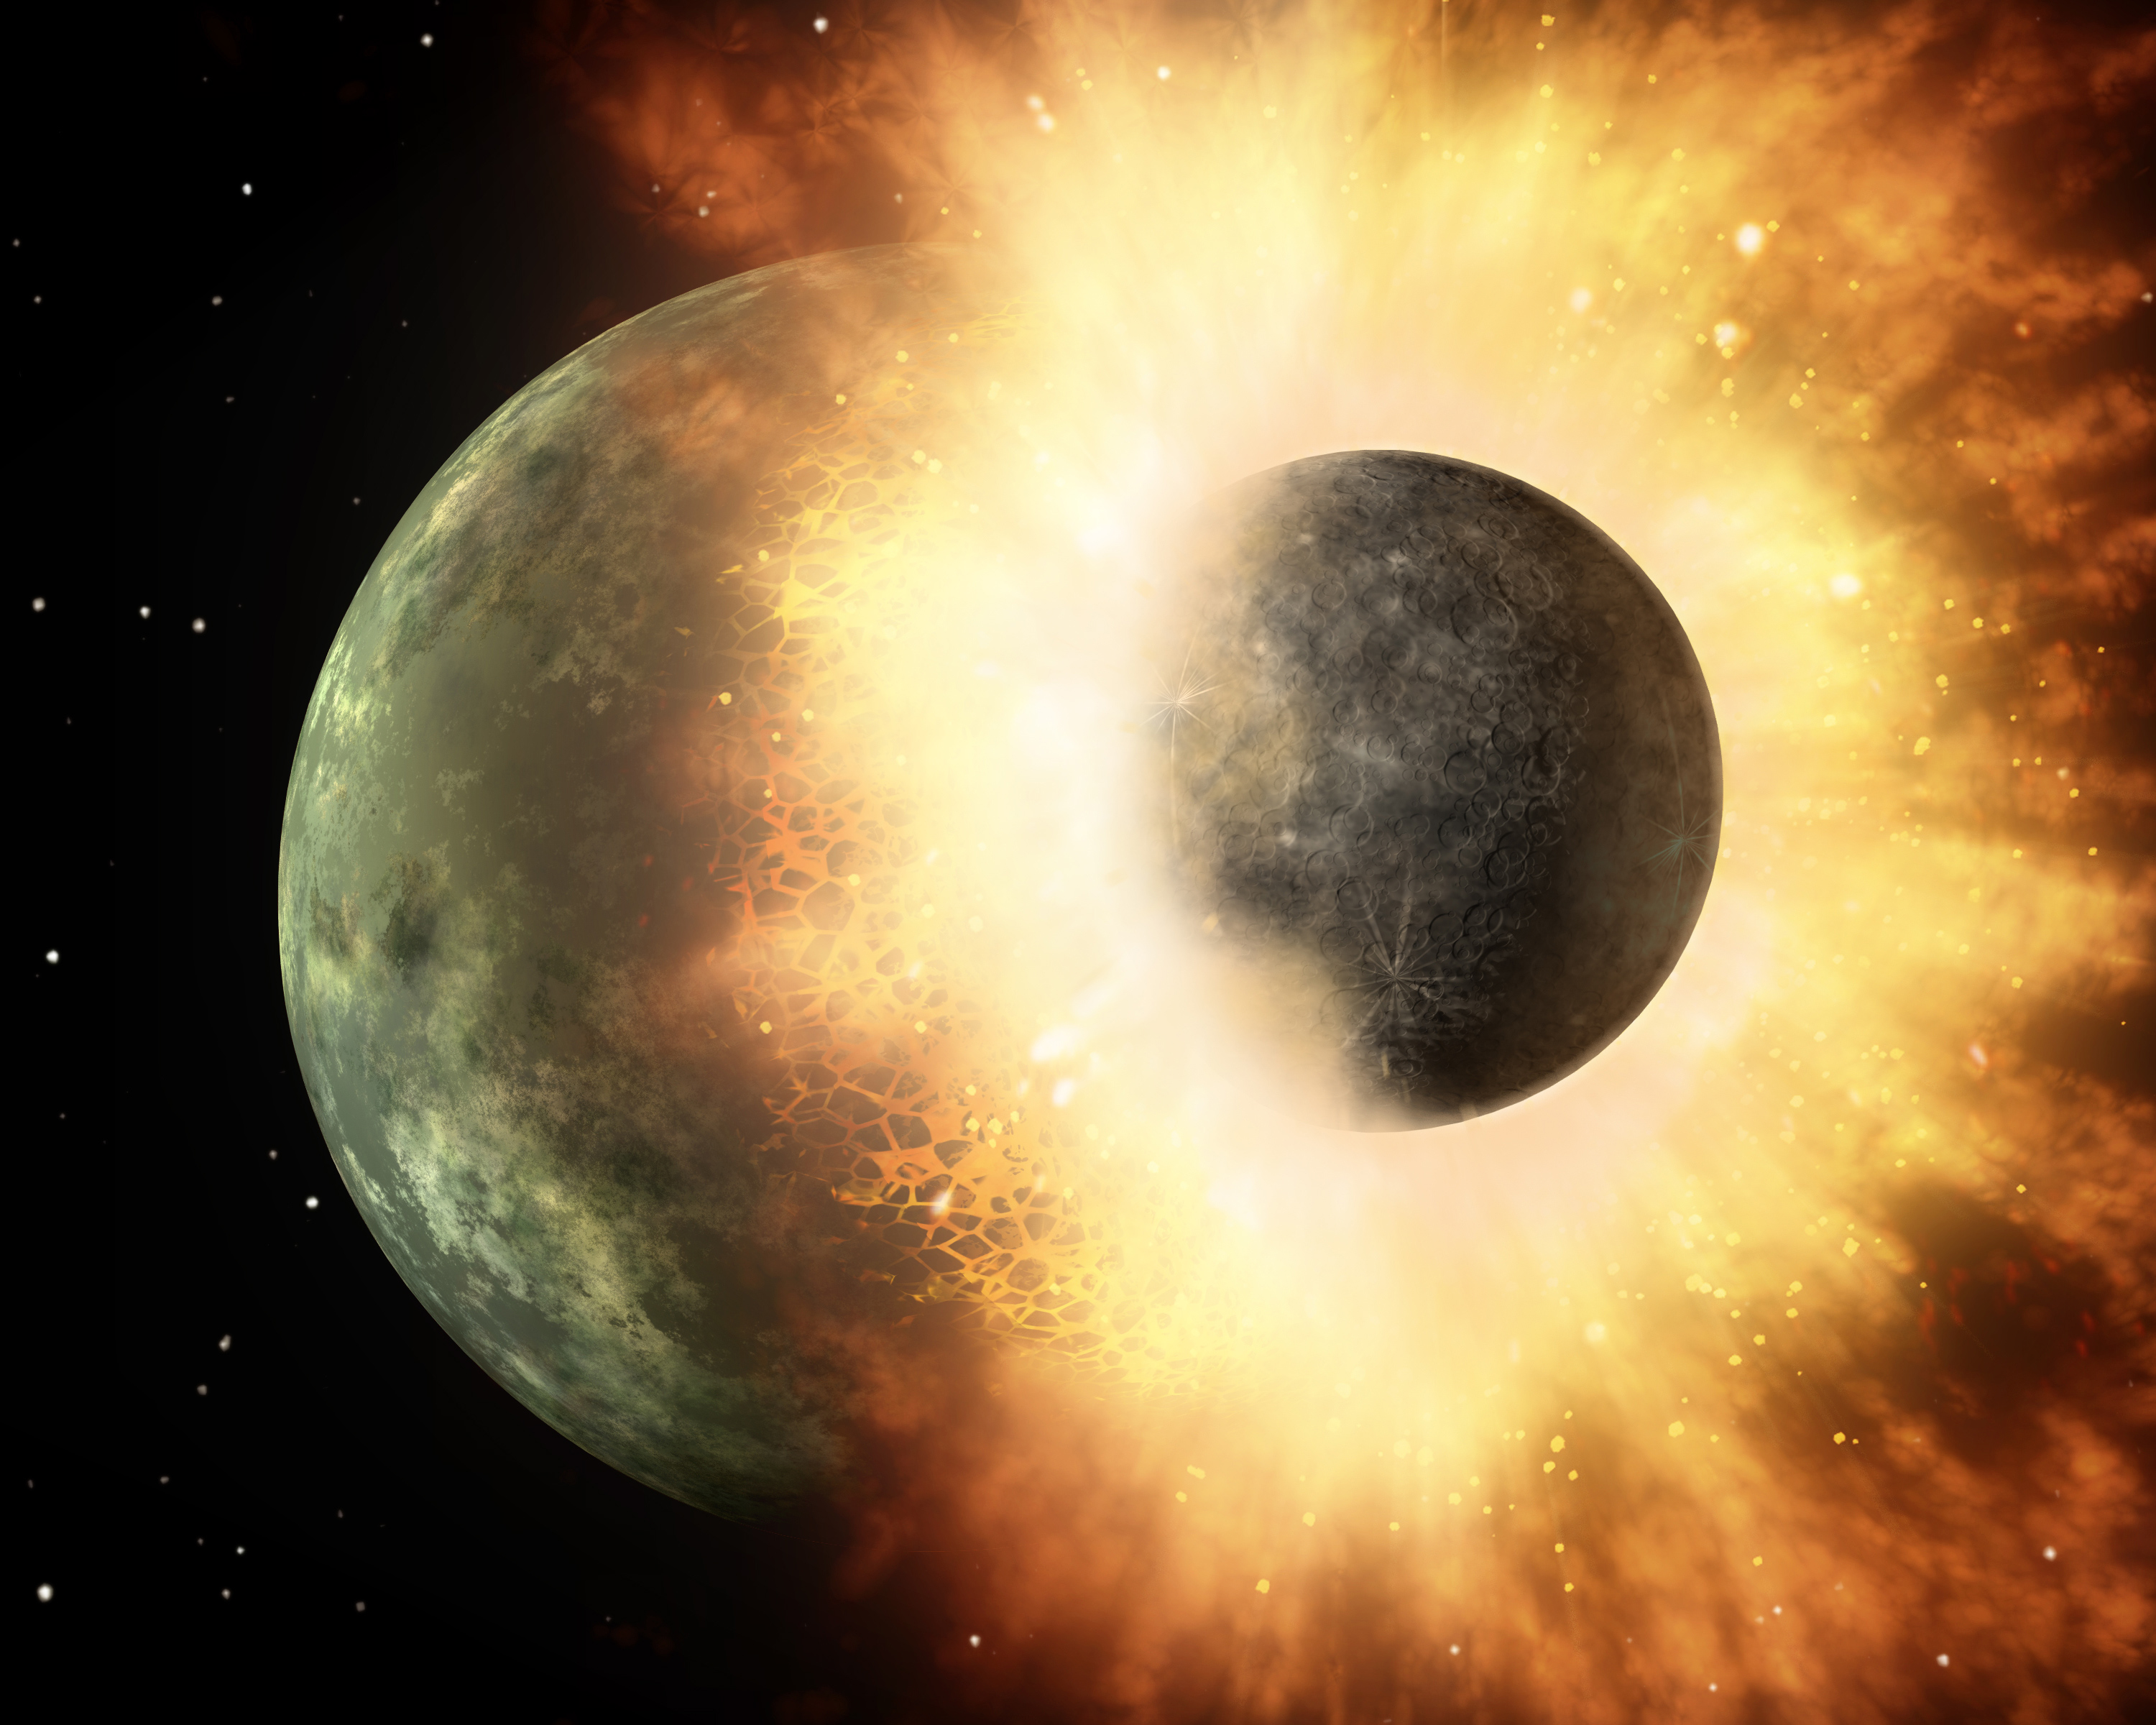 earth formation Do we mean the age of the solar system, or of the earth as a planet within it, or of the earth-moon system, or the time since formation of the earth's metallic core, or the time since formation.